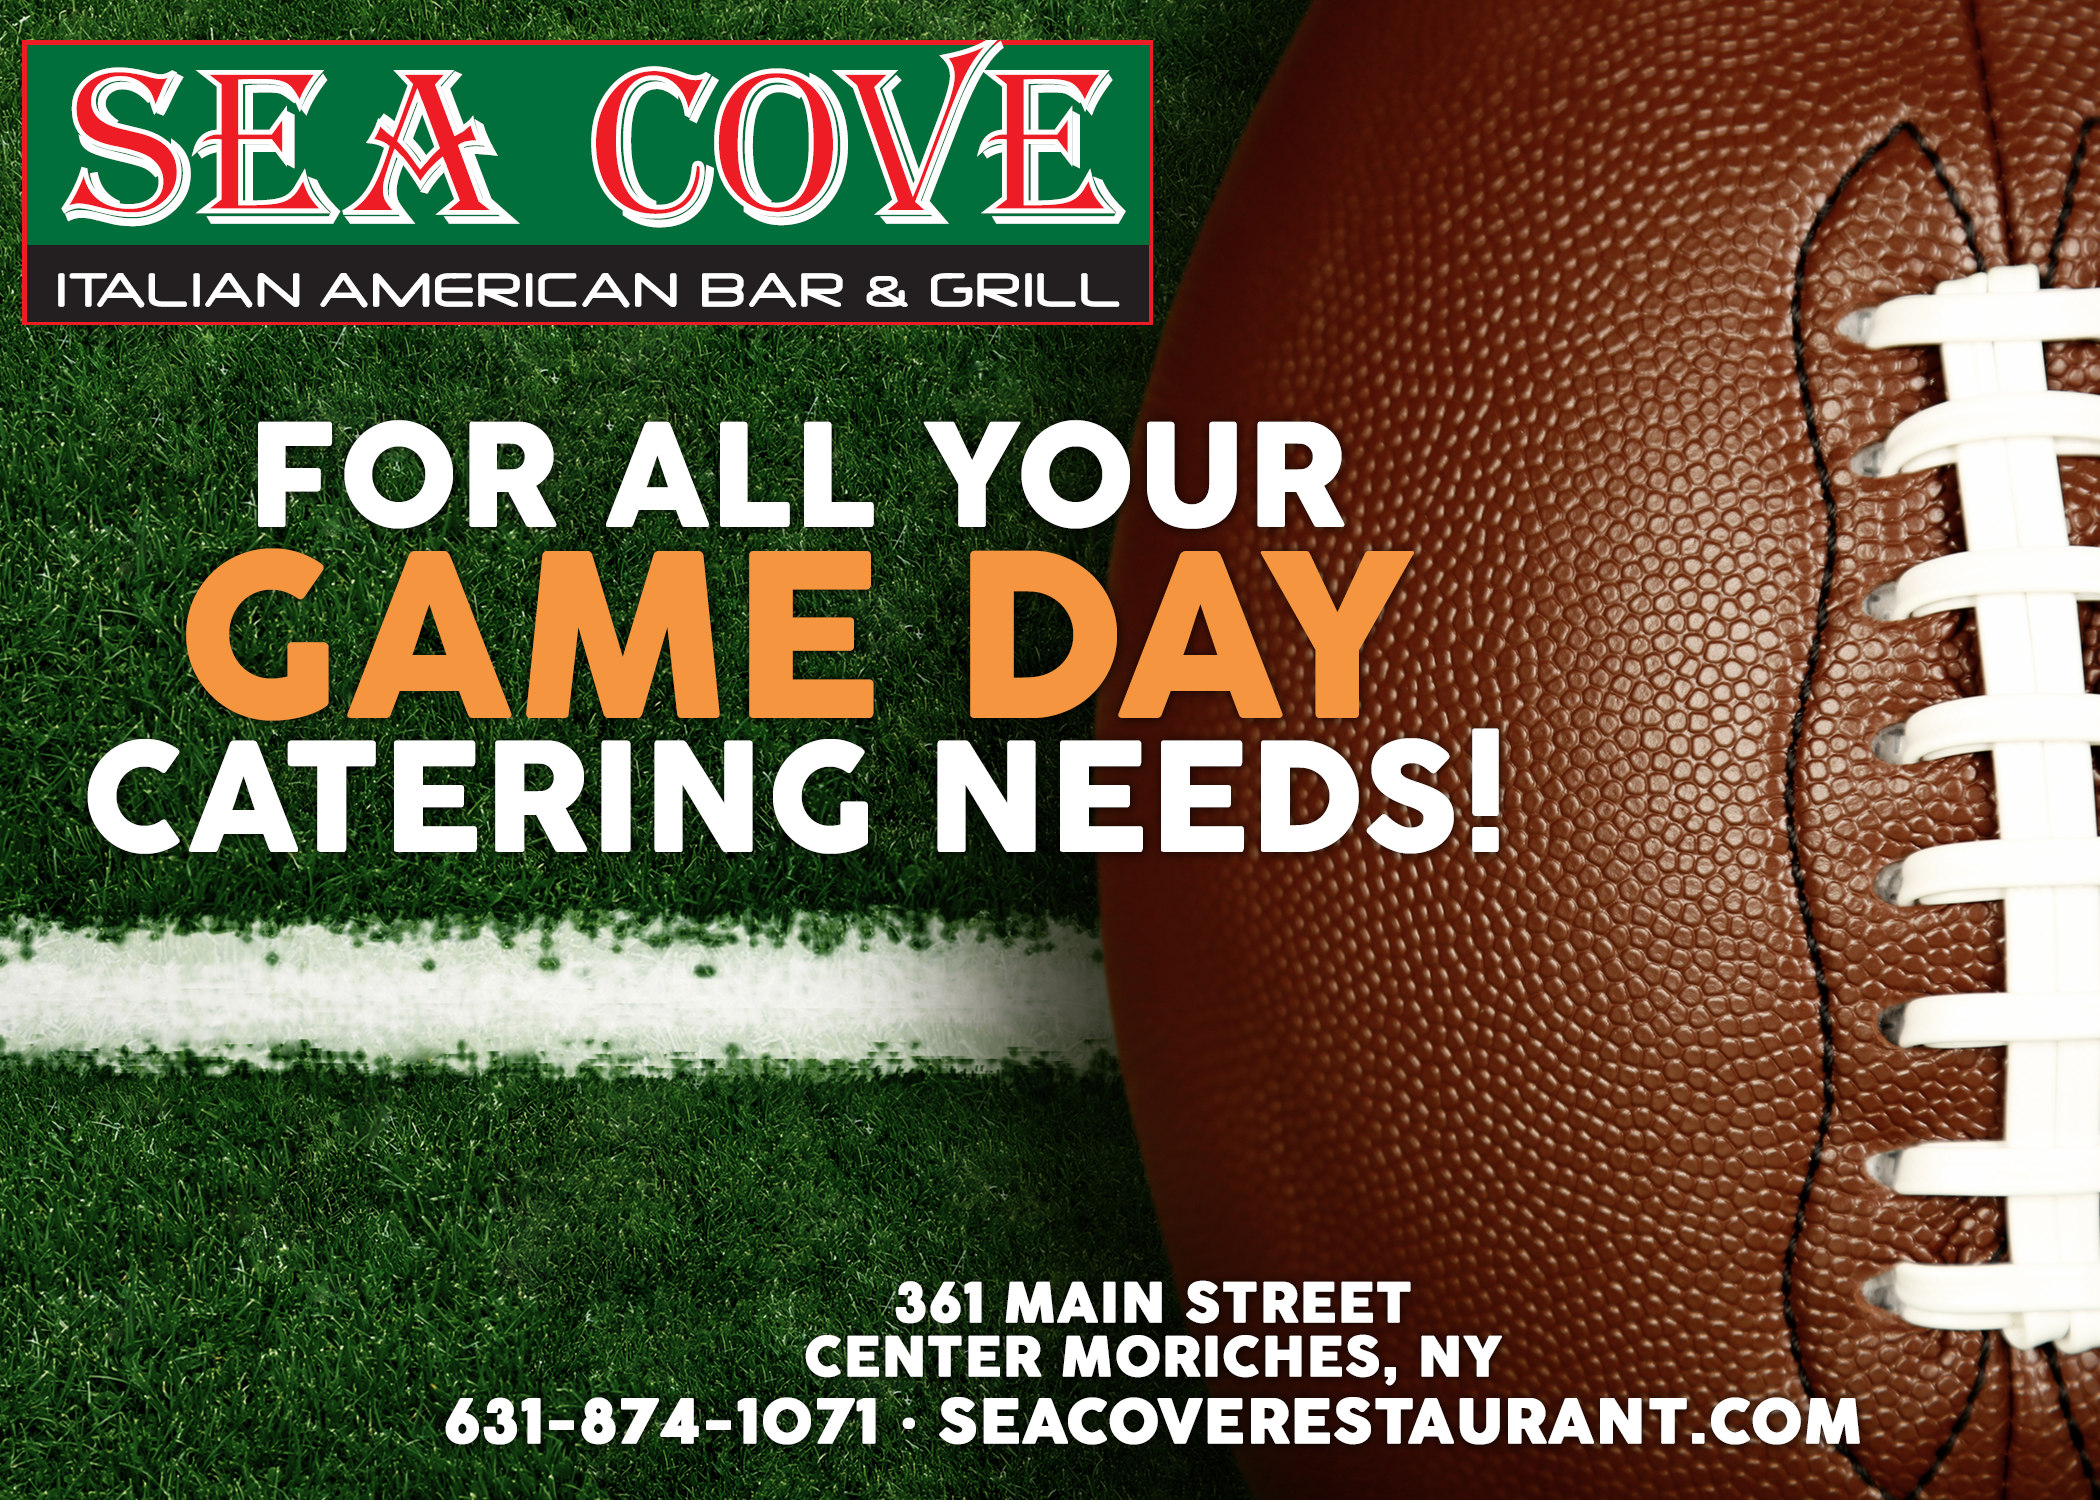 sea cove italian american bar & grill. For all your game day catering needs! image of a football on a field. 361 main street center morichees, NY. 631-874-1071 • seacoverestaurant.com